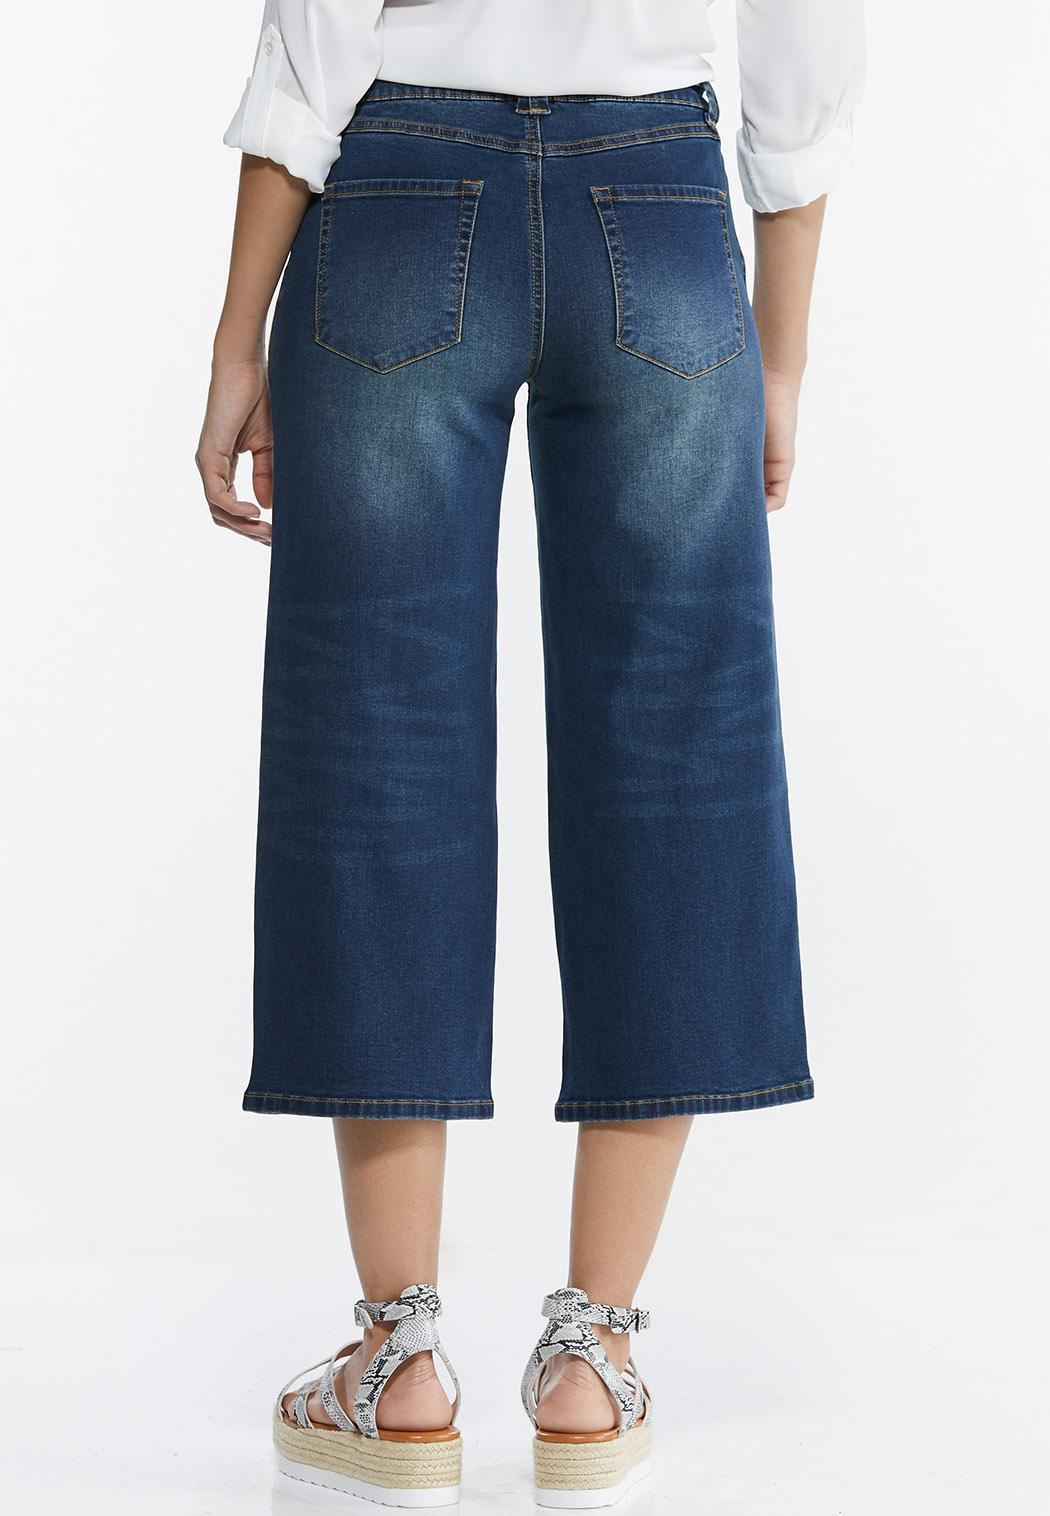 Cropped Belted Jeans (Item #44516315)